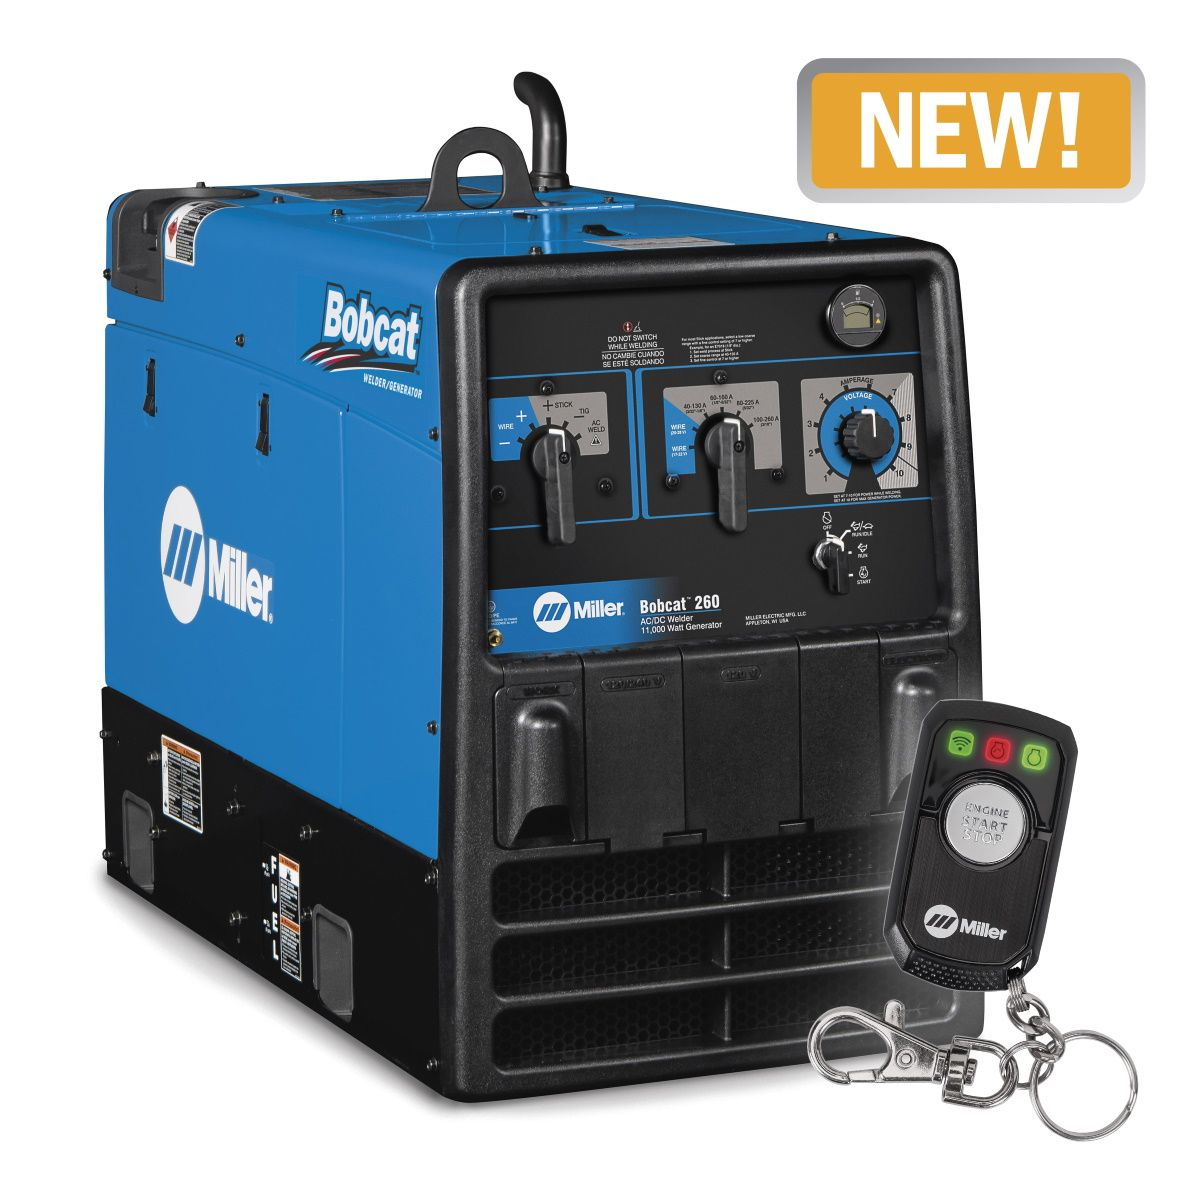 Miller Bobcat 260 Kohler Welder/Generator with GFCI and Remote Start/Stop (907792)